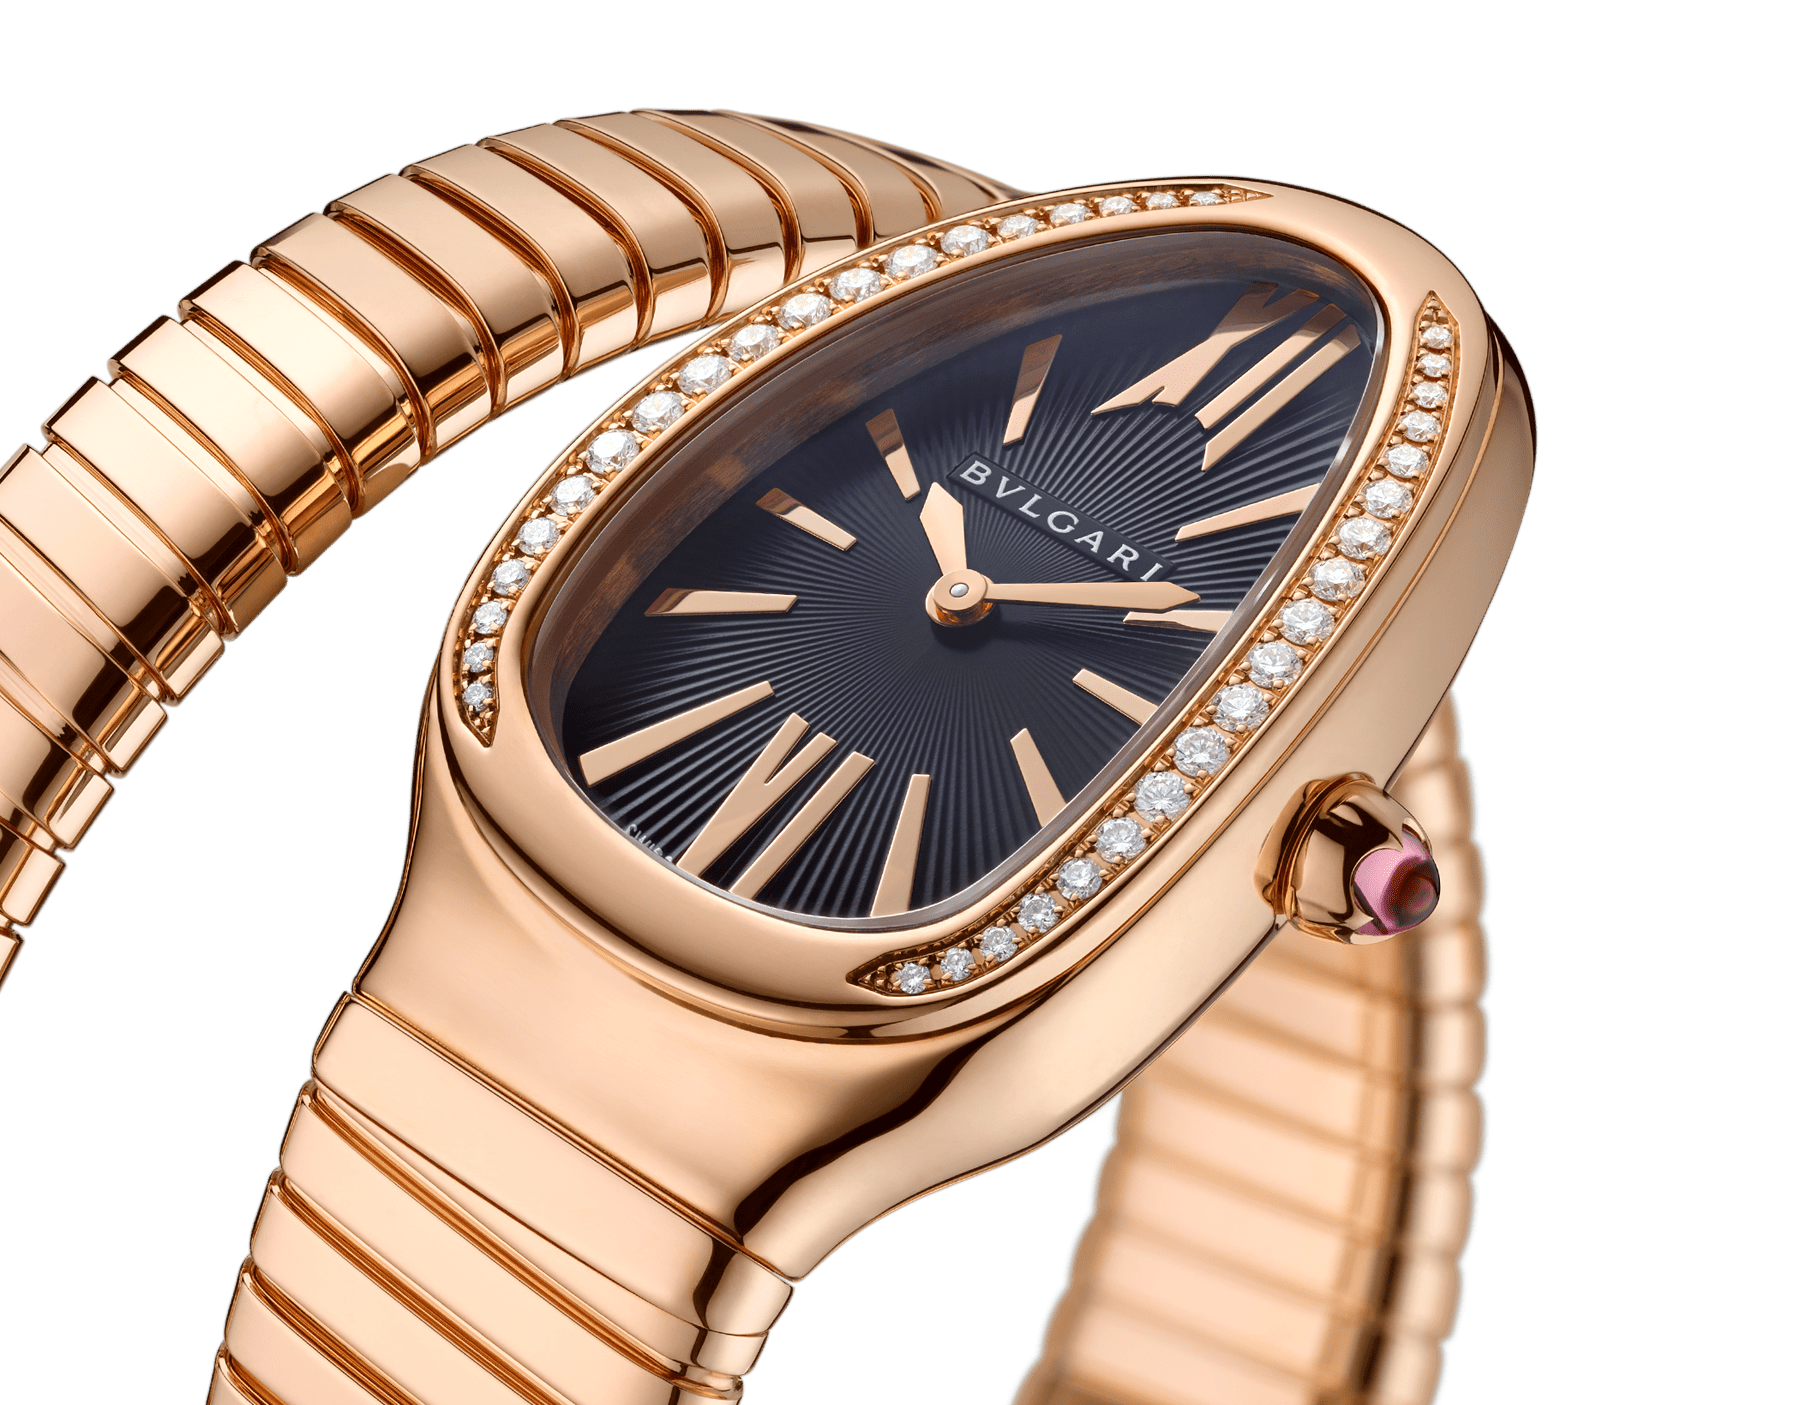 Serpenti Tubogas single spiral watch with 18 kt rose gold case set with brilliant cut diamond, black opaline dial and 18kt rose gold bracelet. 101815 image 3